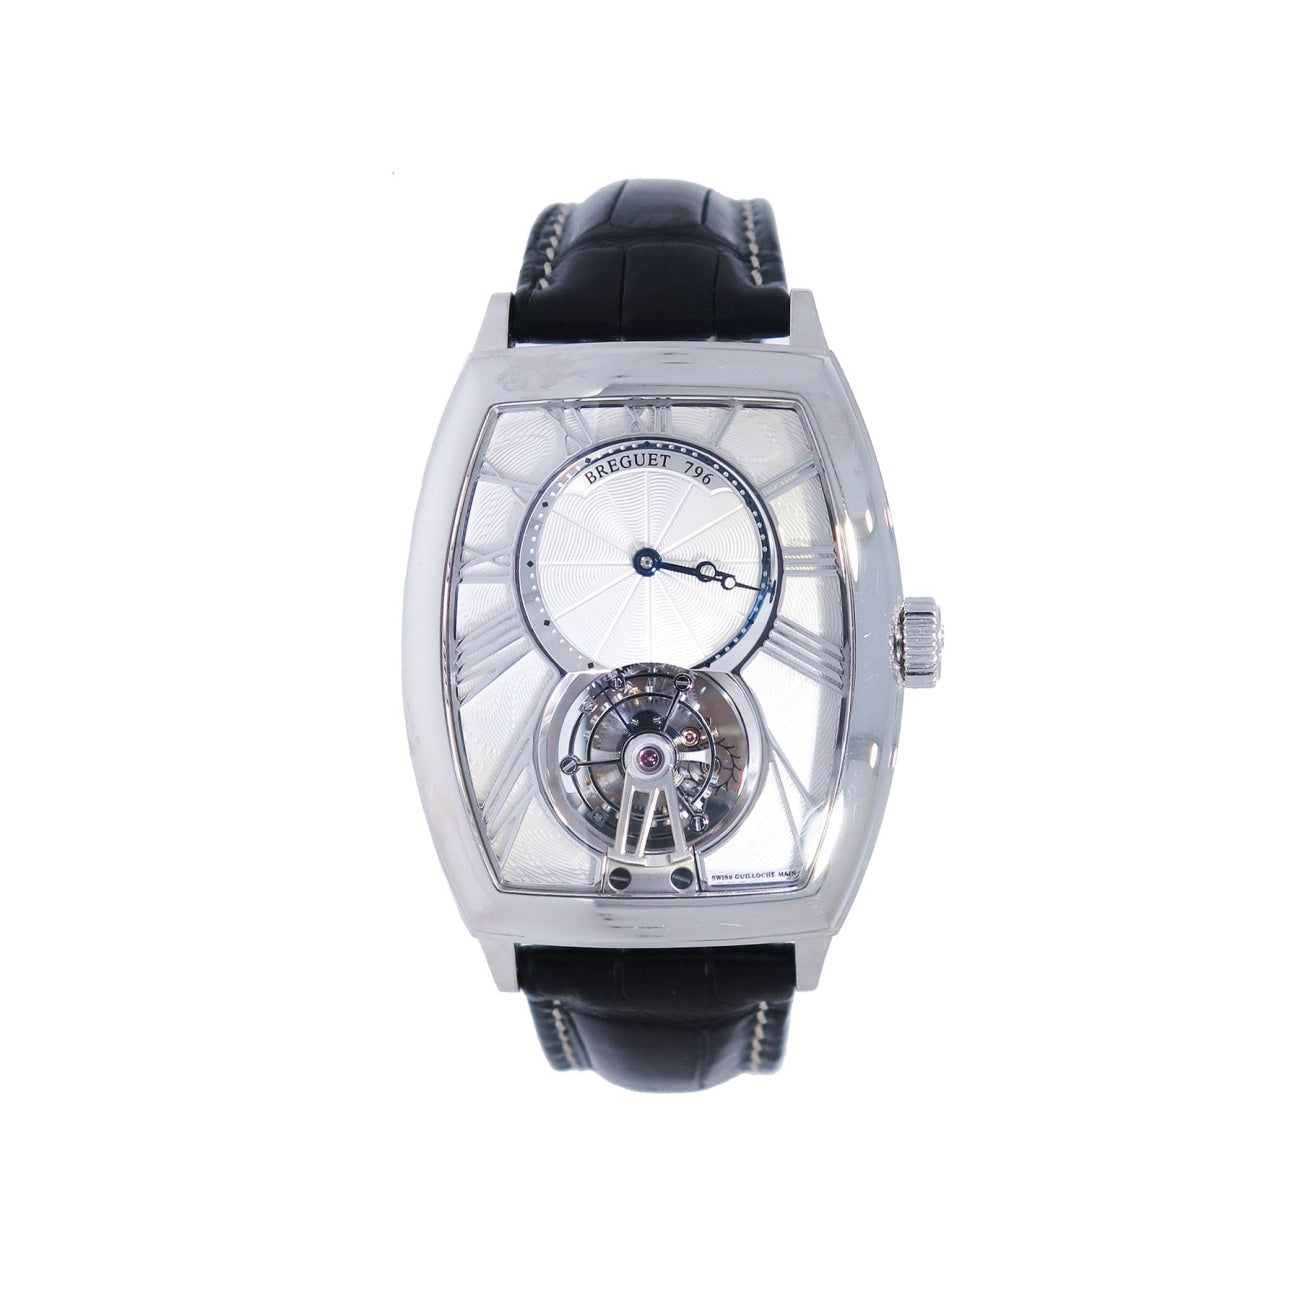 Pre-Owned Breguet Watches - Heritage Tourbillon | Manfredi Jewels